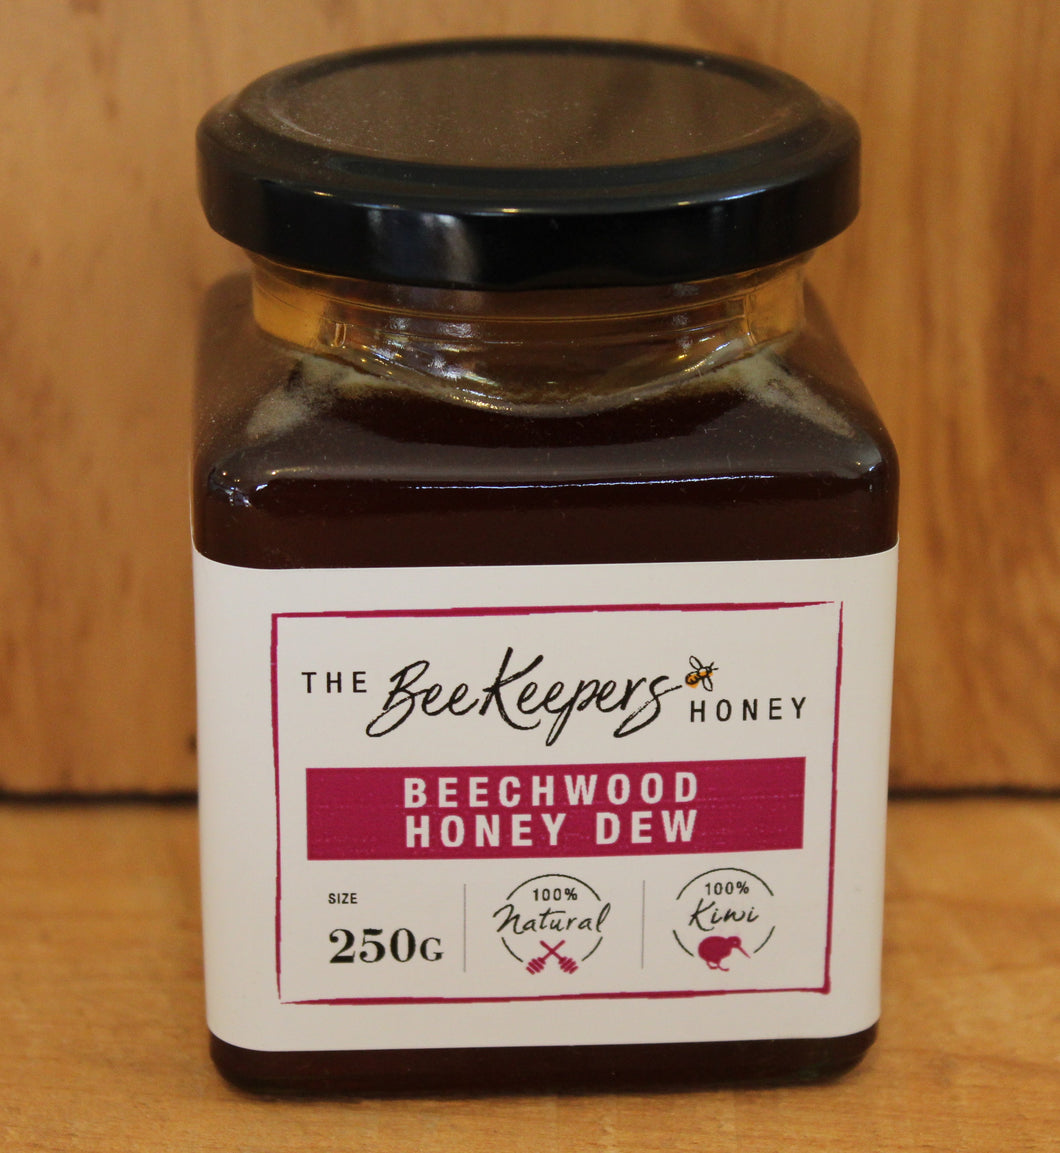 BEECHWOOD HONEY DEW 250g